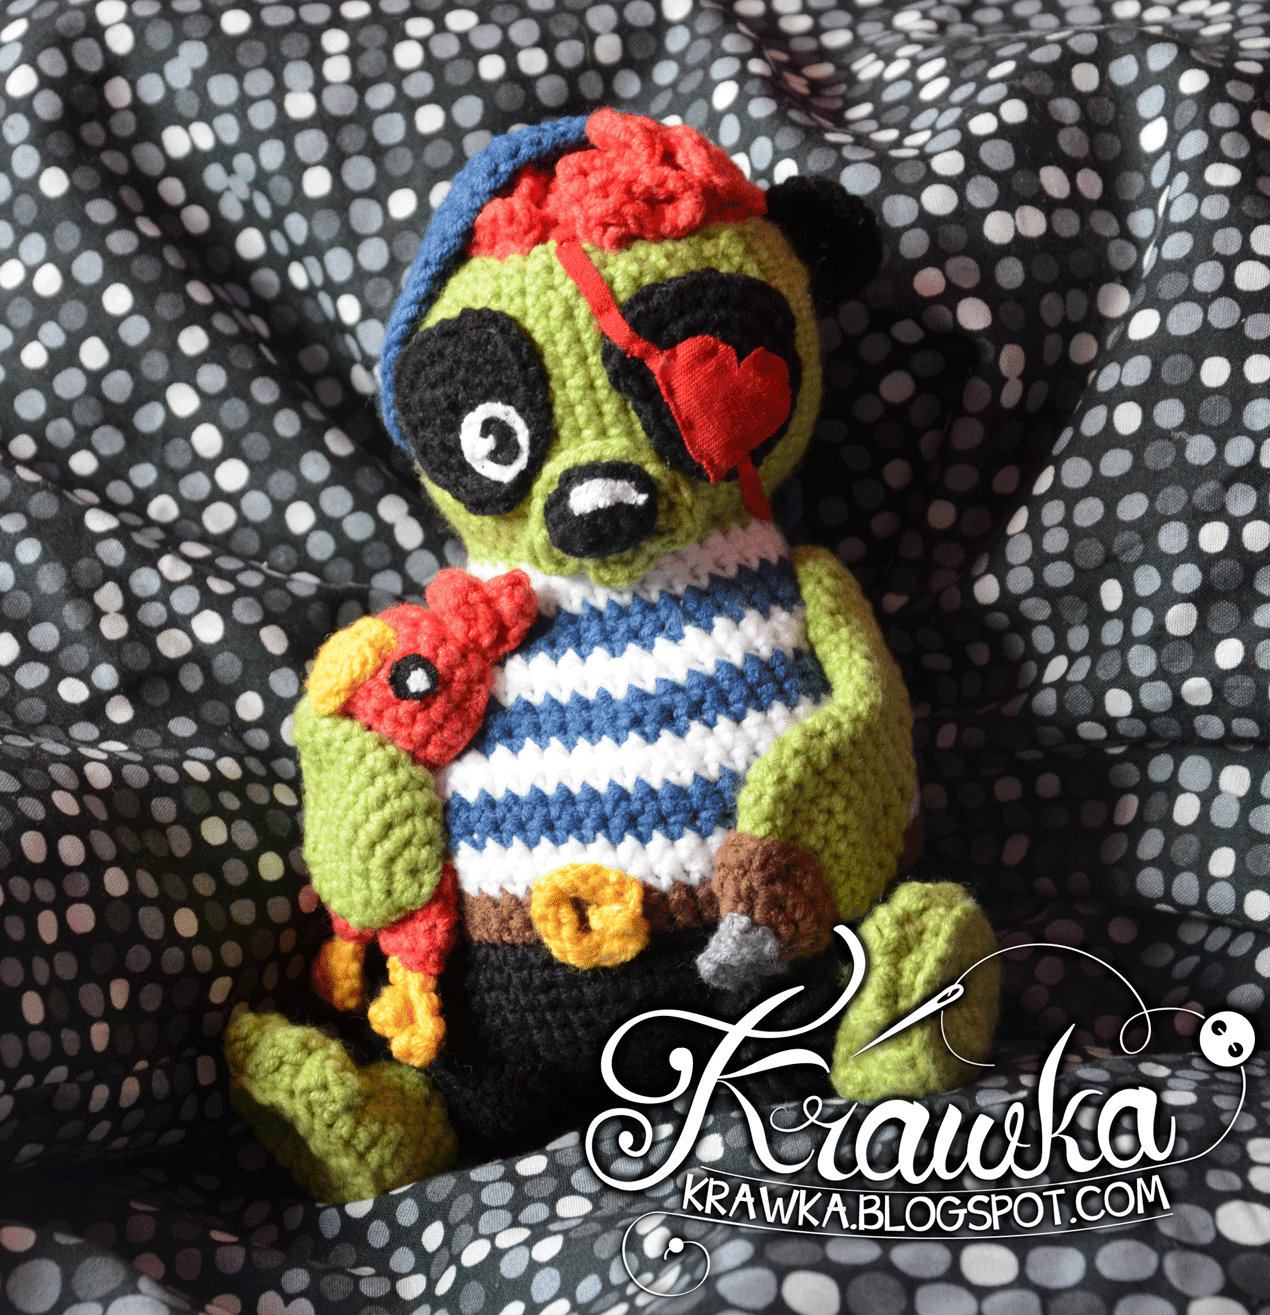 Maskotka zrobiona na szydełku zielona panda, pirat, zombie trzymająca uroczą papugę. Crocheted maskot, toy green zombie panda who is also a pirate, holding a red cute parrot amigurumi crochet